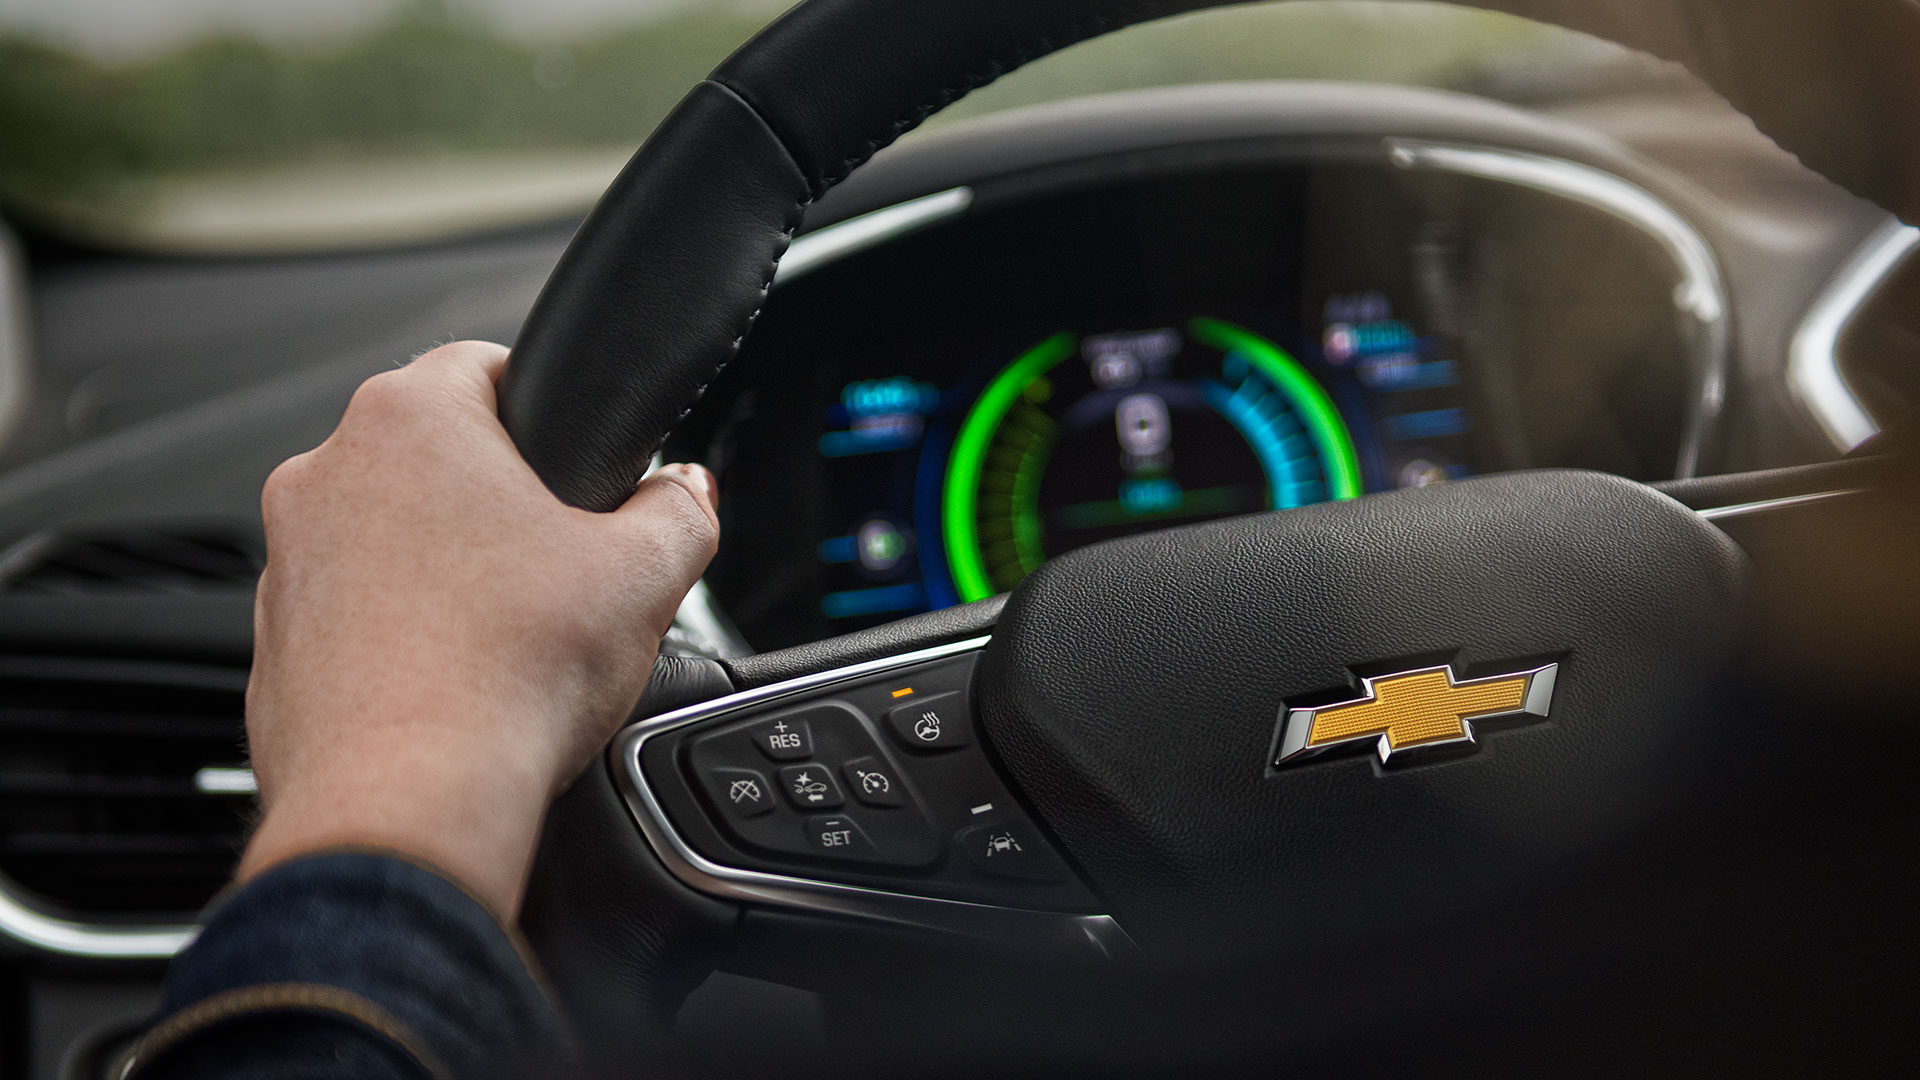 Valley Chevy - Chevrolet 2017 Volt: Interior Steering Wheel